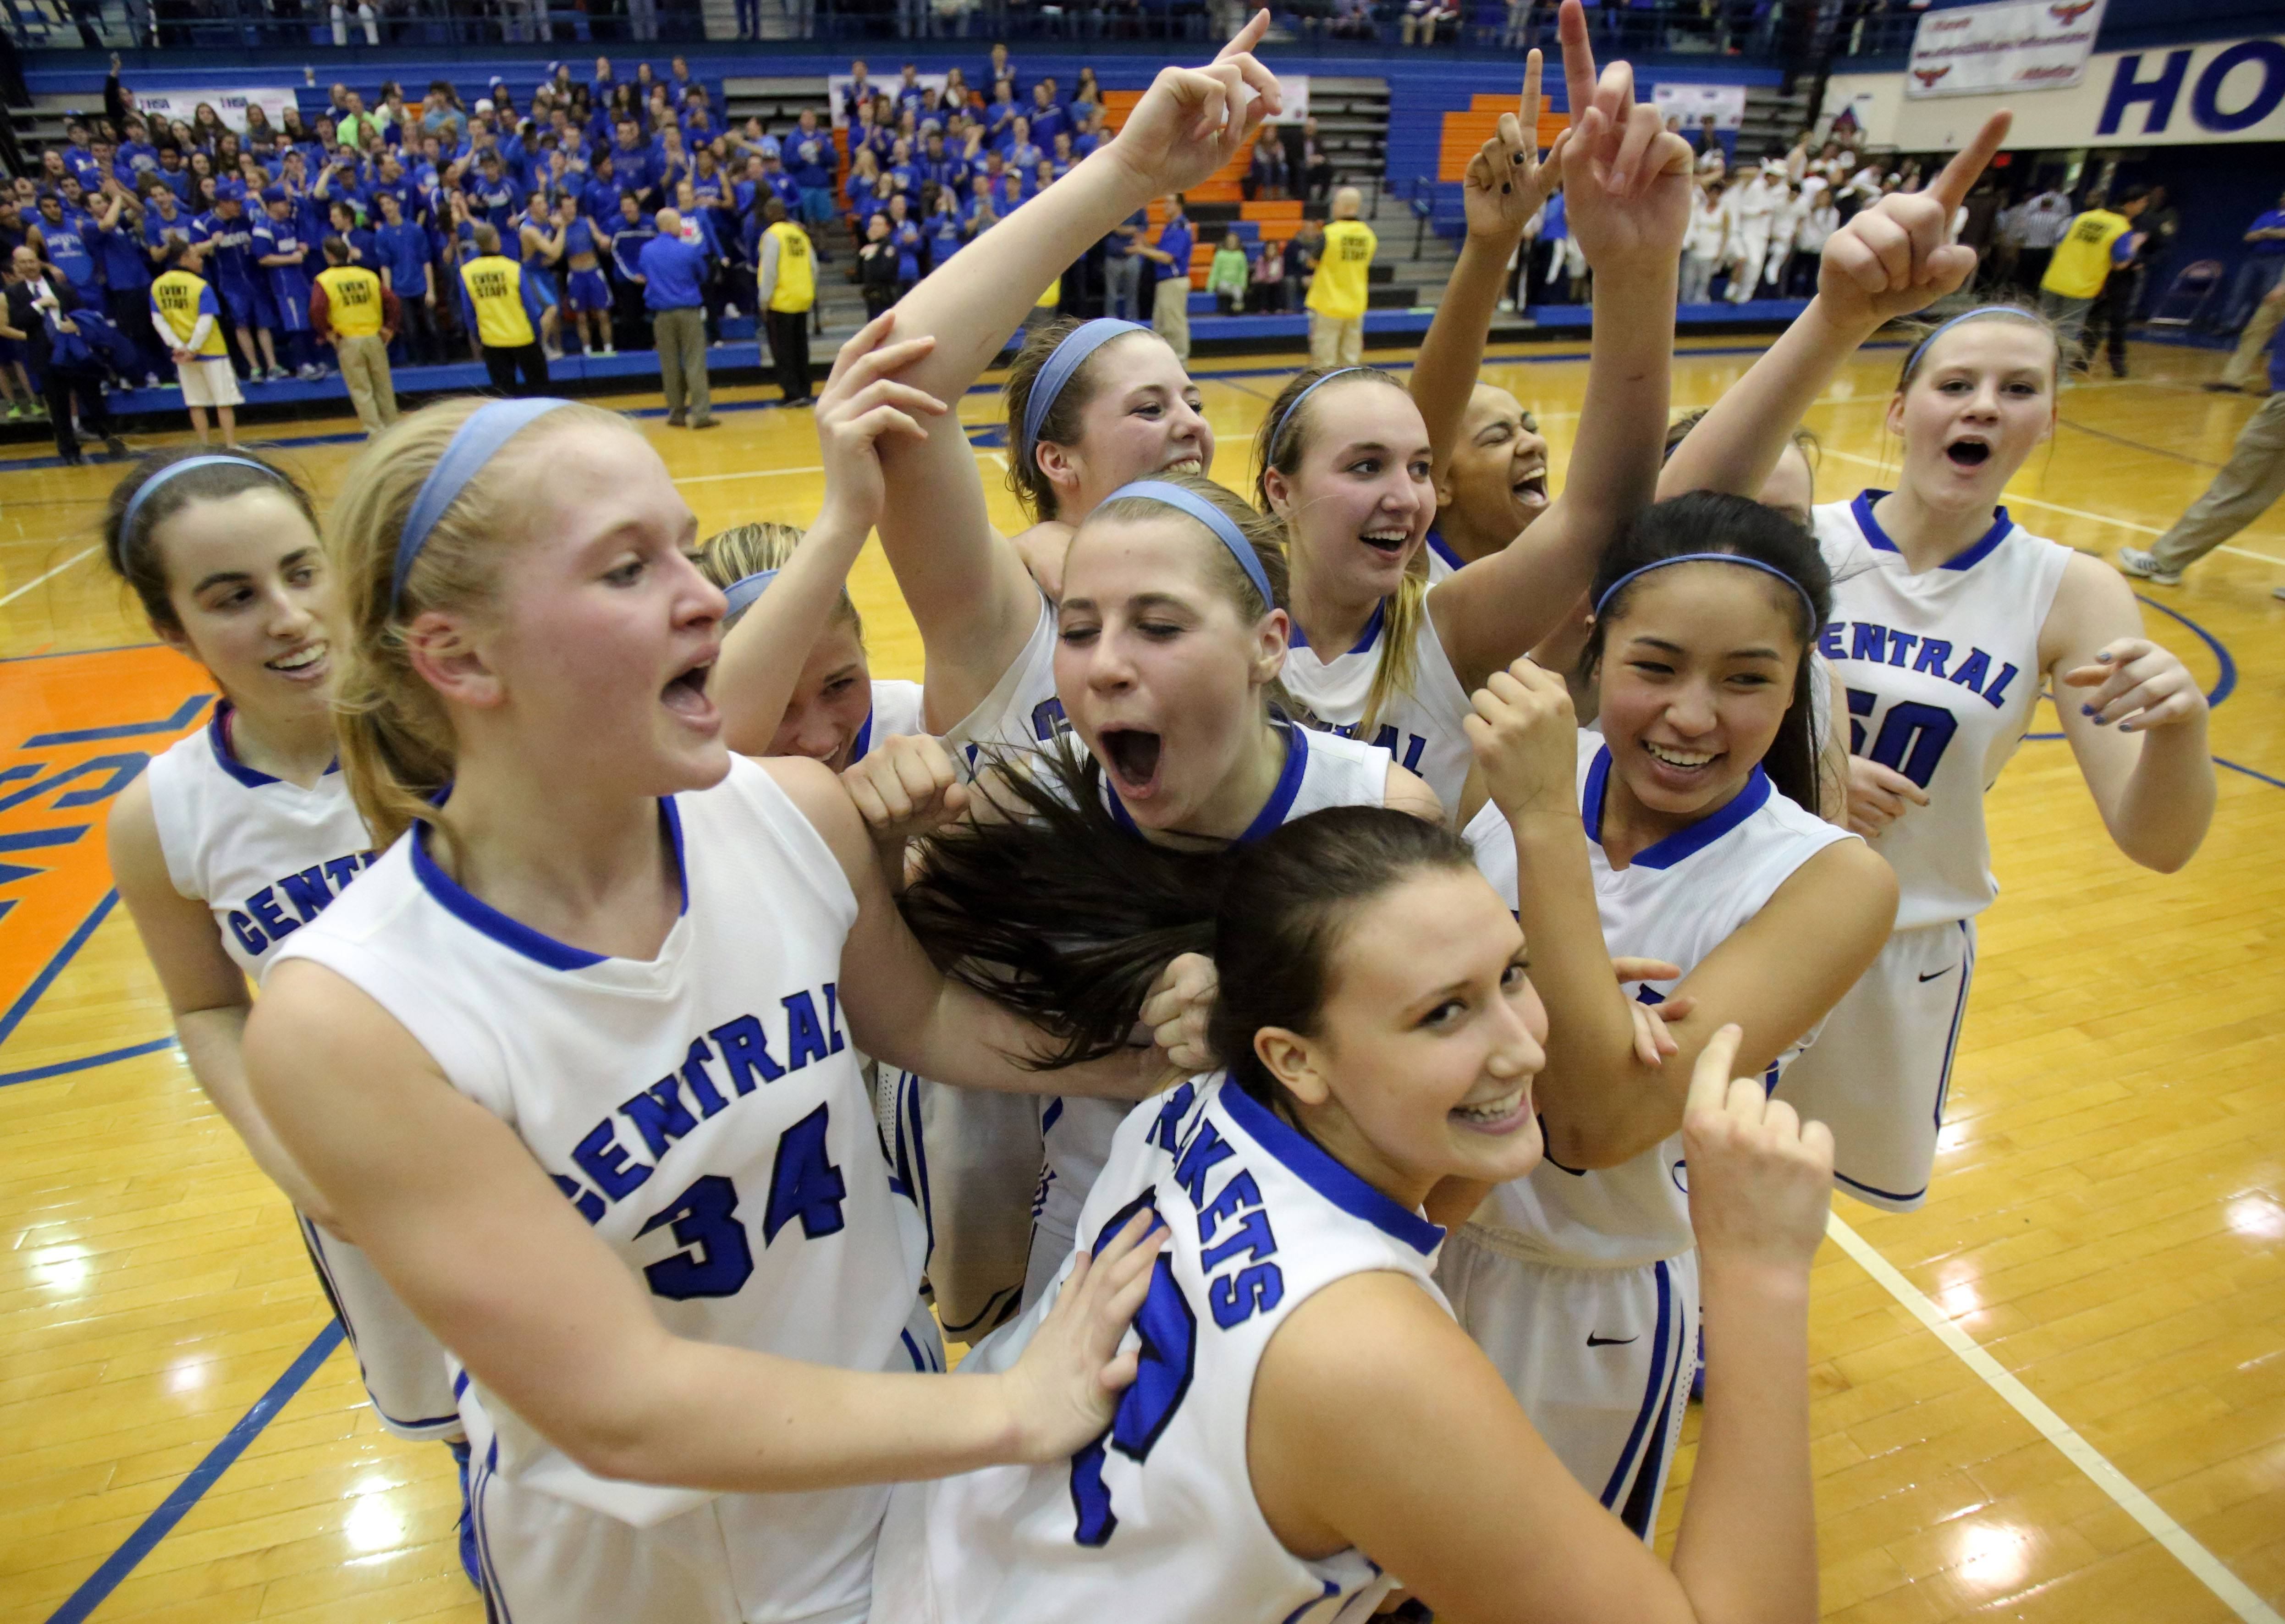 Burlington Central players go crazy after defeating Carmel 41-29 in Monday's Class 3A supersectional girls basketball game in Hoffman Estates.